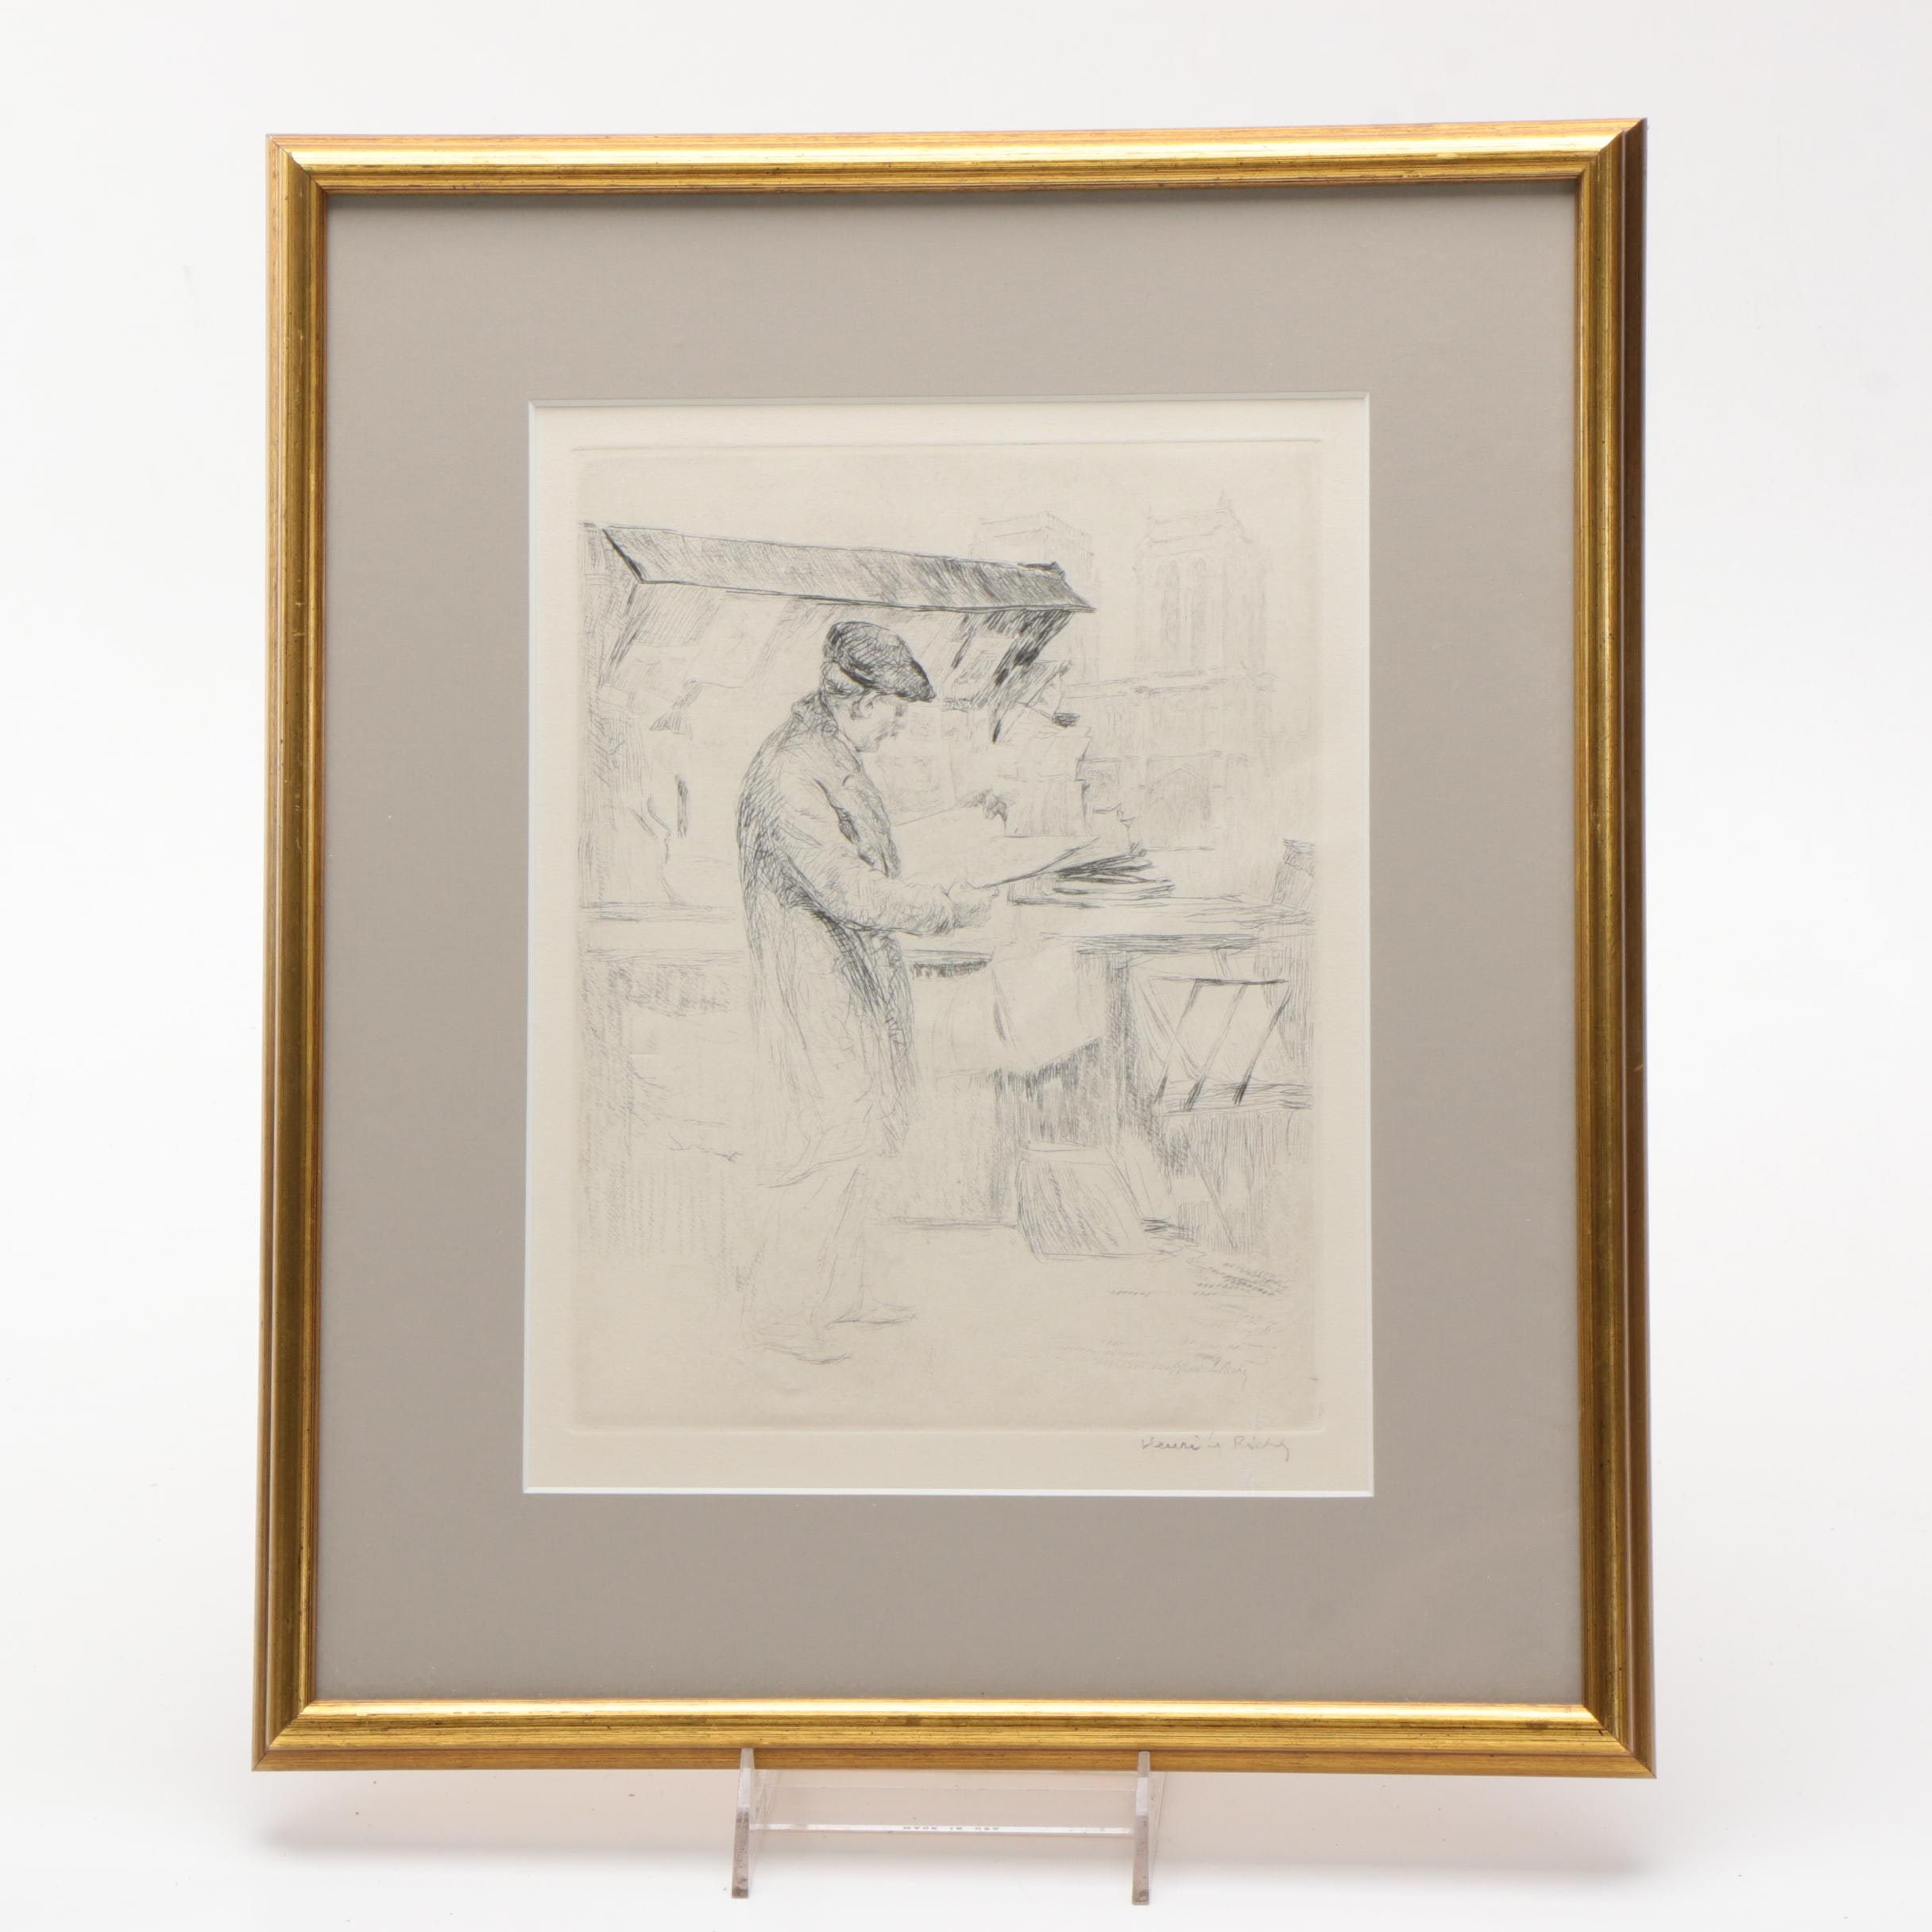 Henri LeRiche Etching with Drypoint of Man at Market Stall